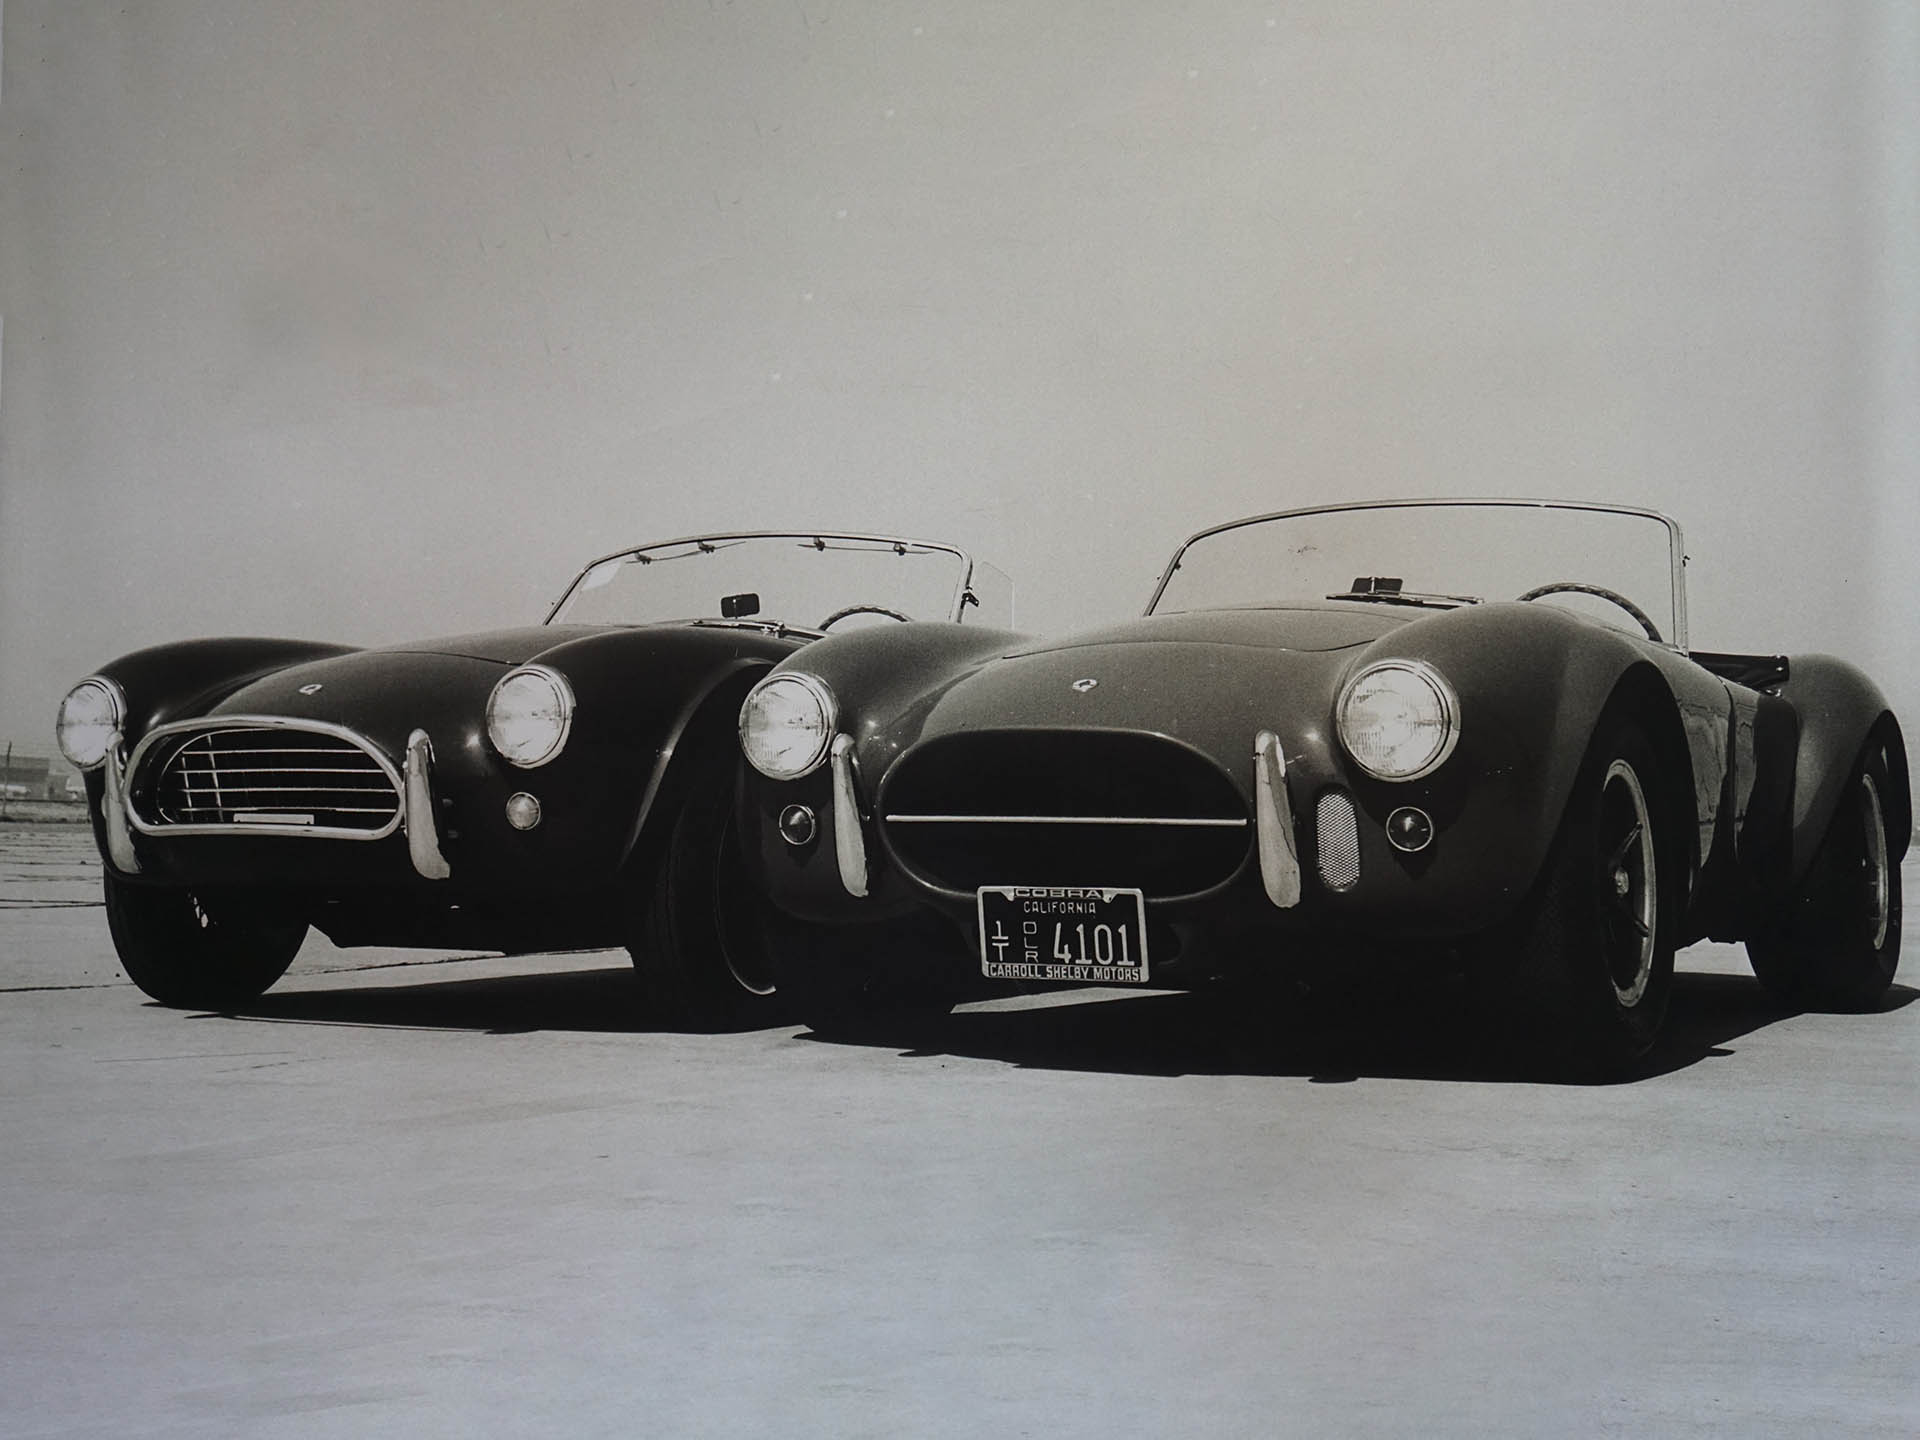 2 original Shelby cobras